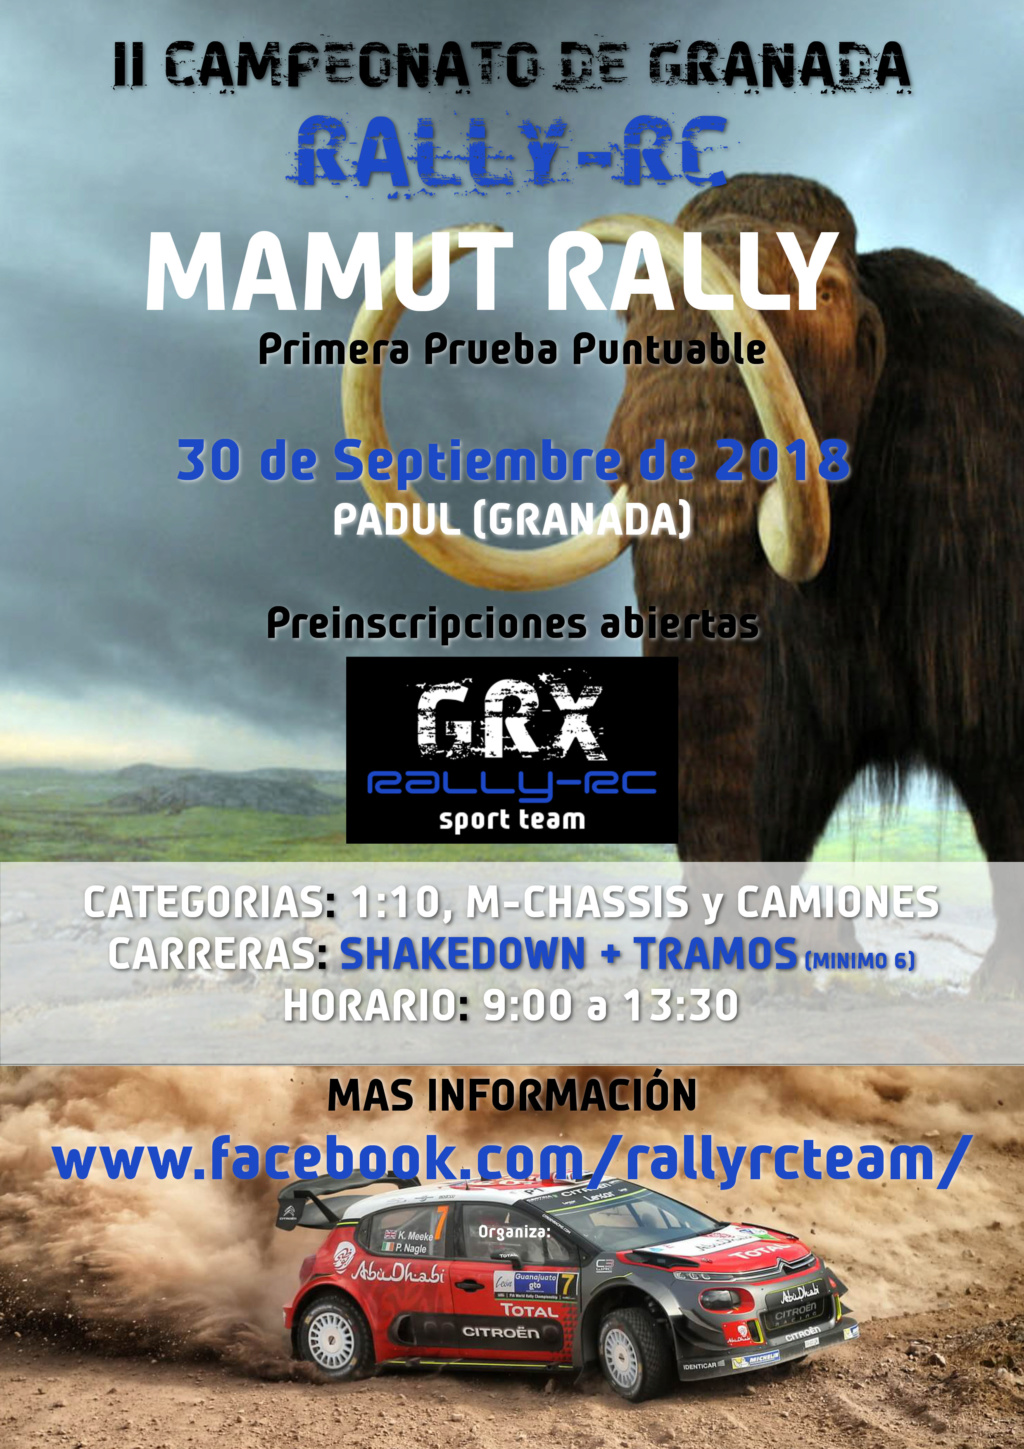 RALLY-RC 1/10 - Página 2 Cartel10